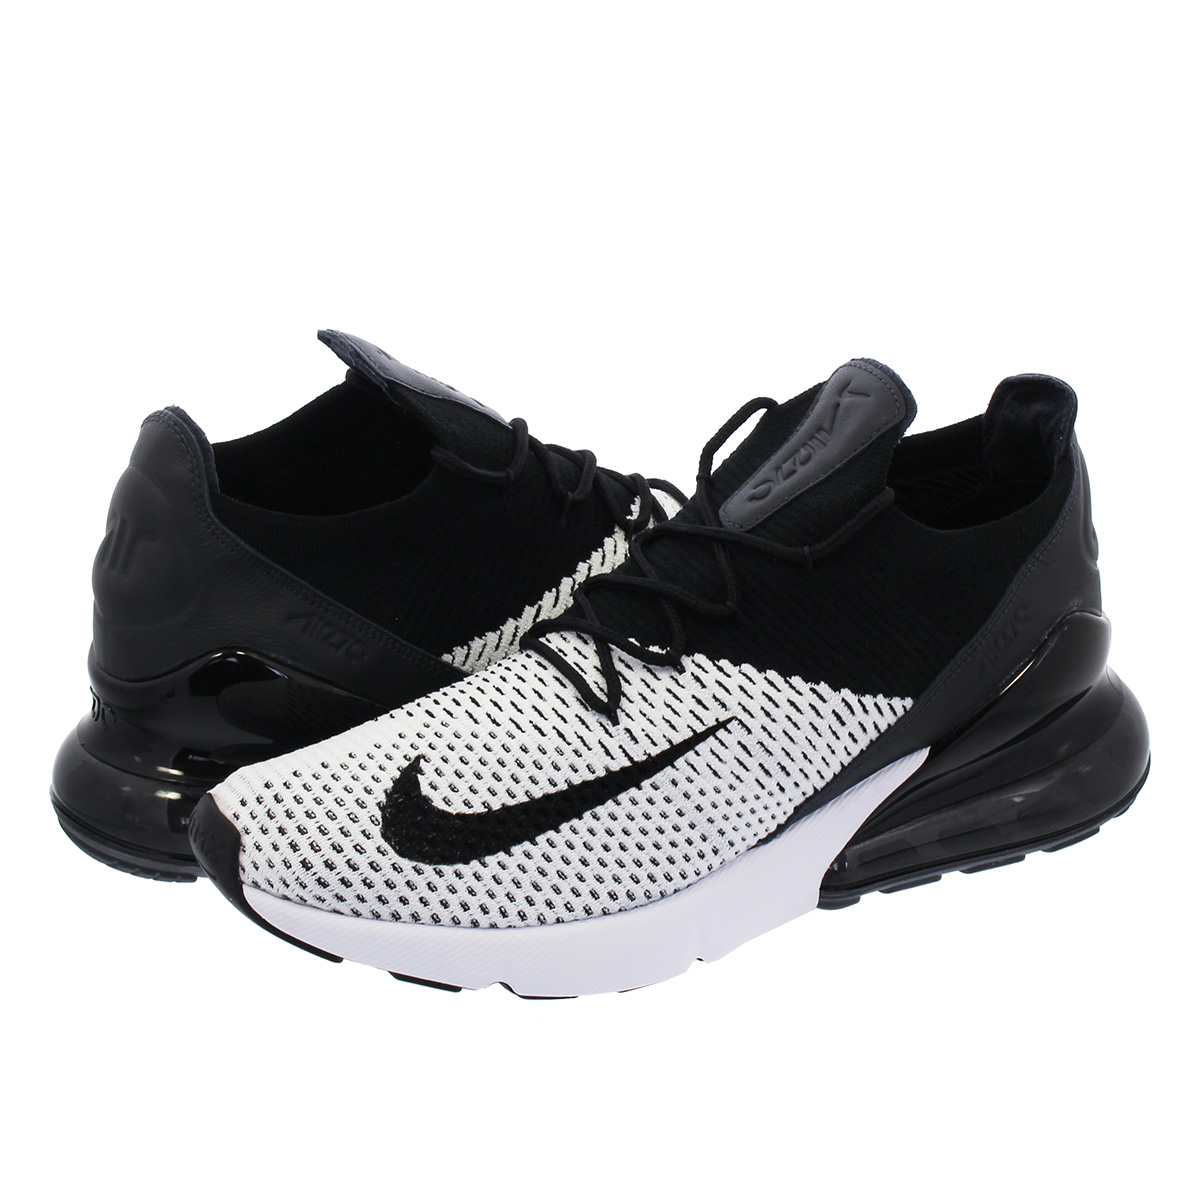 the latest 1938f 787b1 NIKE AIR MAX 270 FLYKNIT Kie Ney AMAX 270 fried food knit  WHITE/BLACK/ANTHRACITE ao1023-100